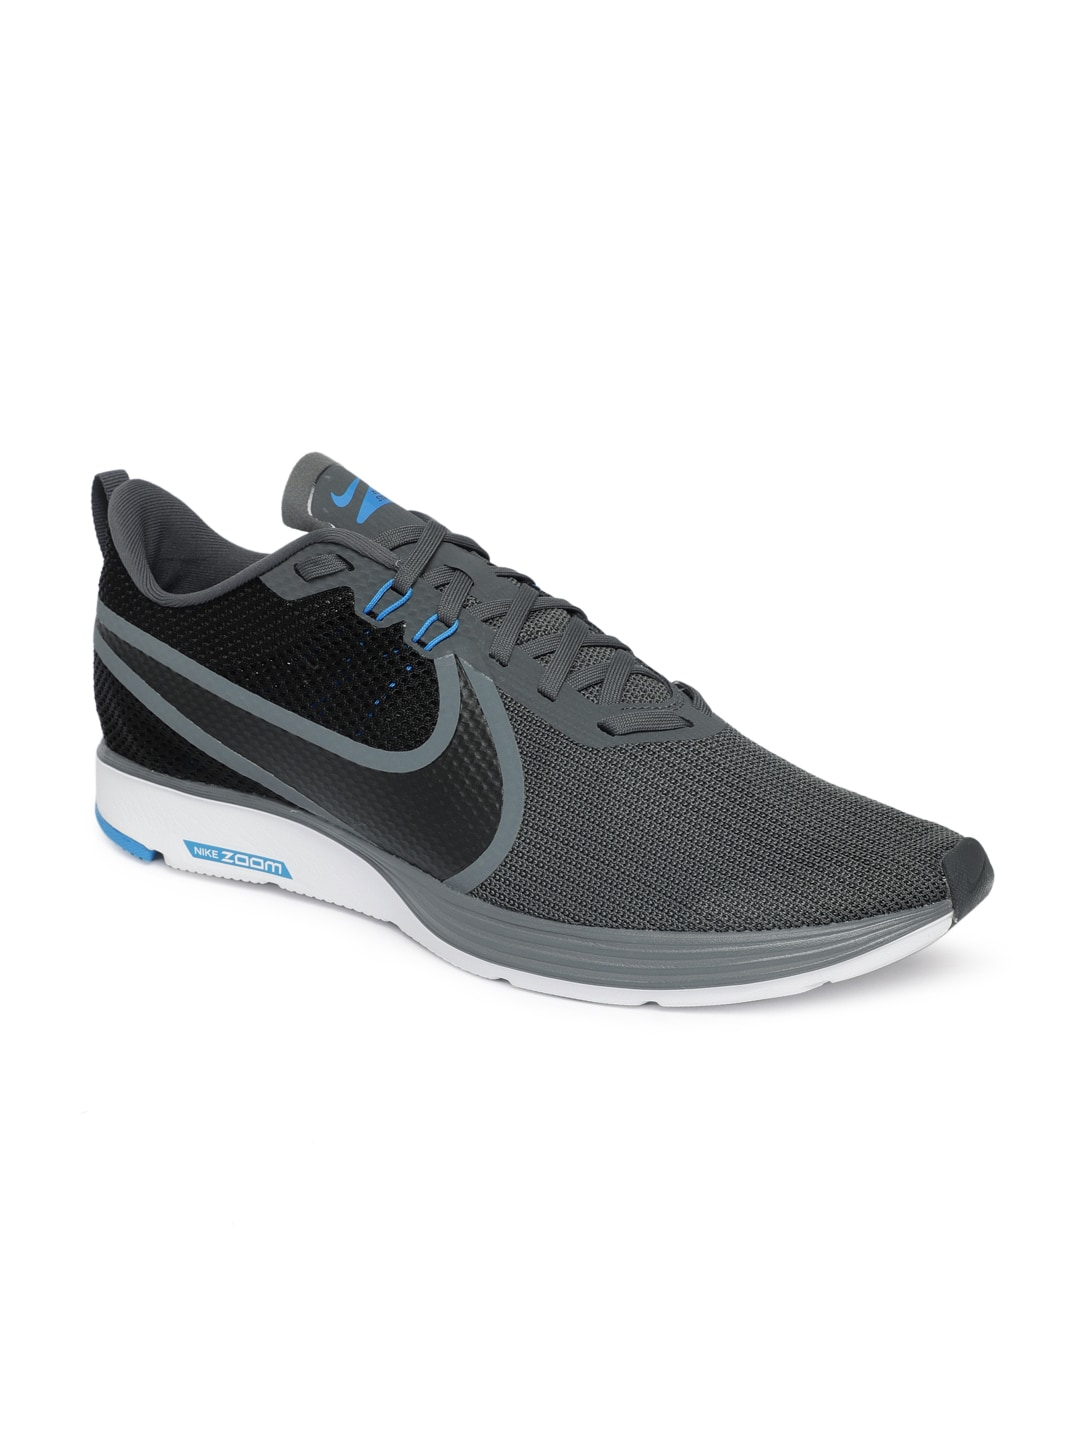 buy popular c6c5e a6ee6 Nike Running Shoes - Buy Nike Running Shoes Online   Myntra